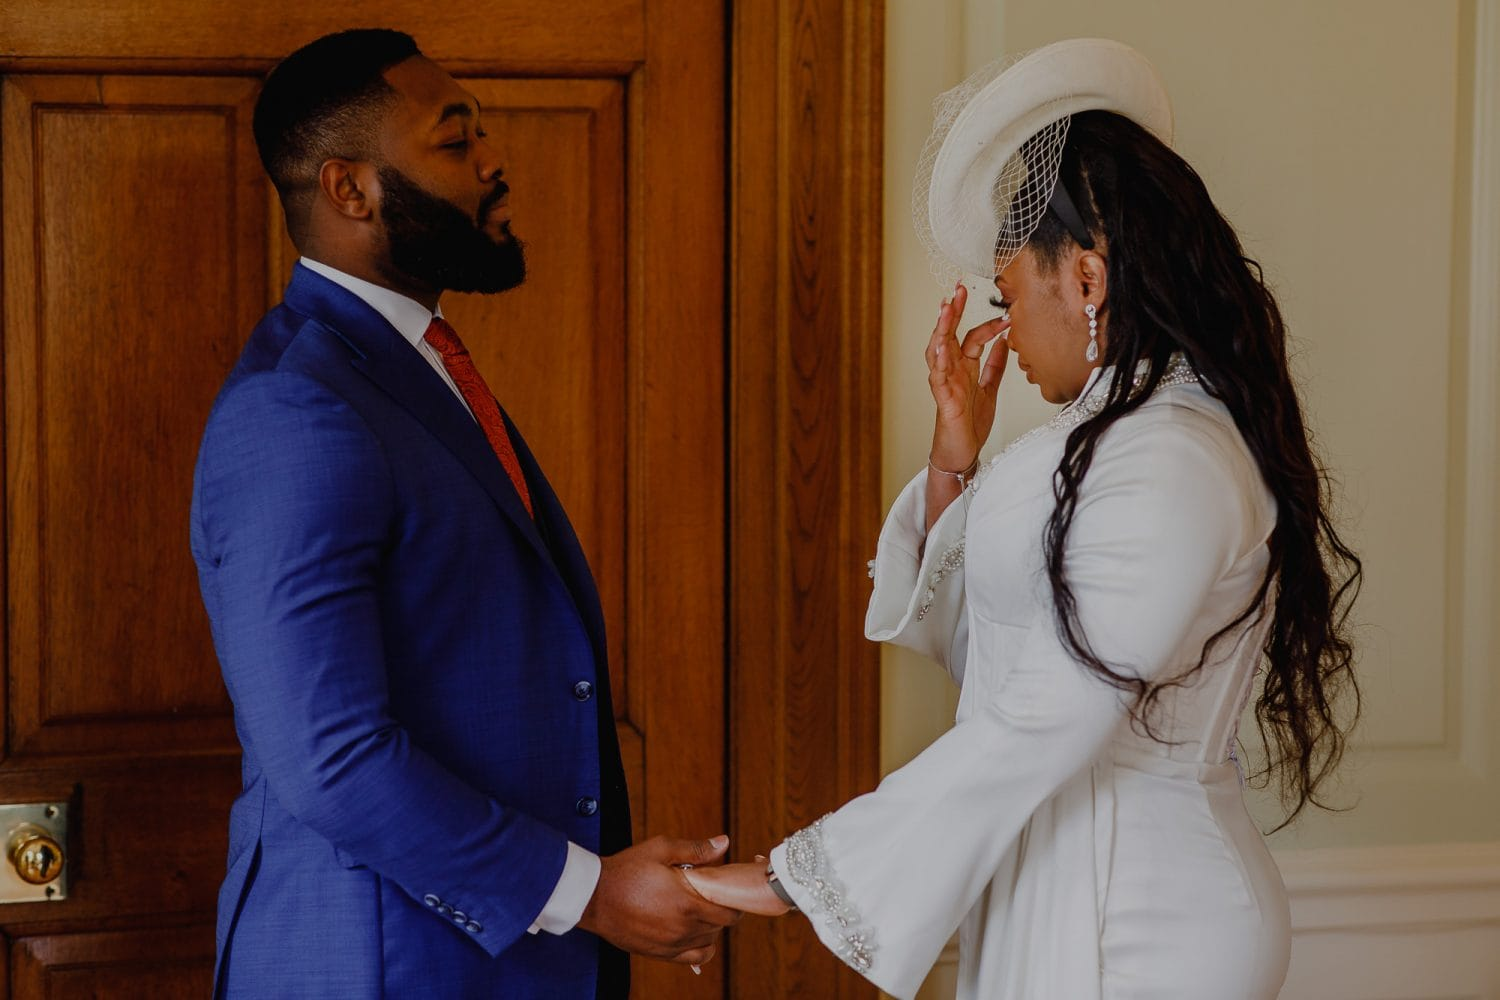 The Brides gets emotion when she says 'I do' to her Groom.